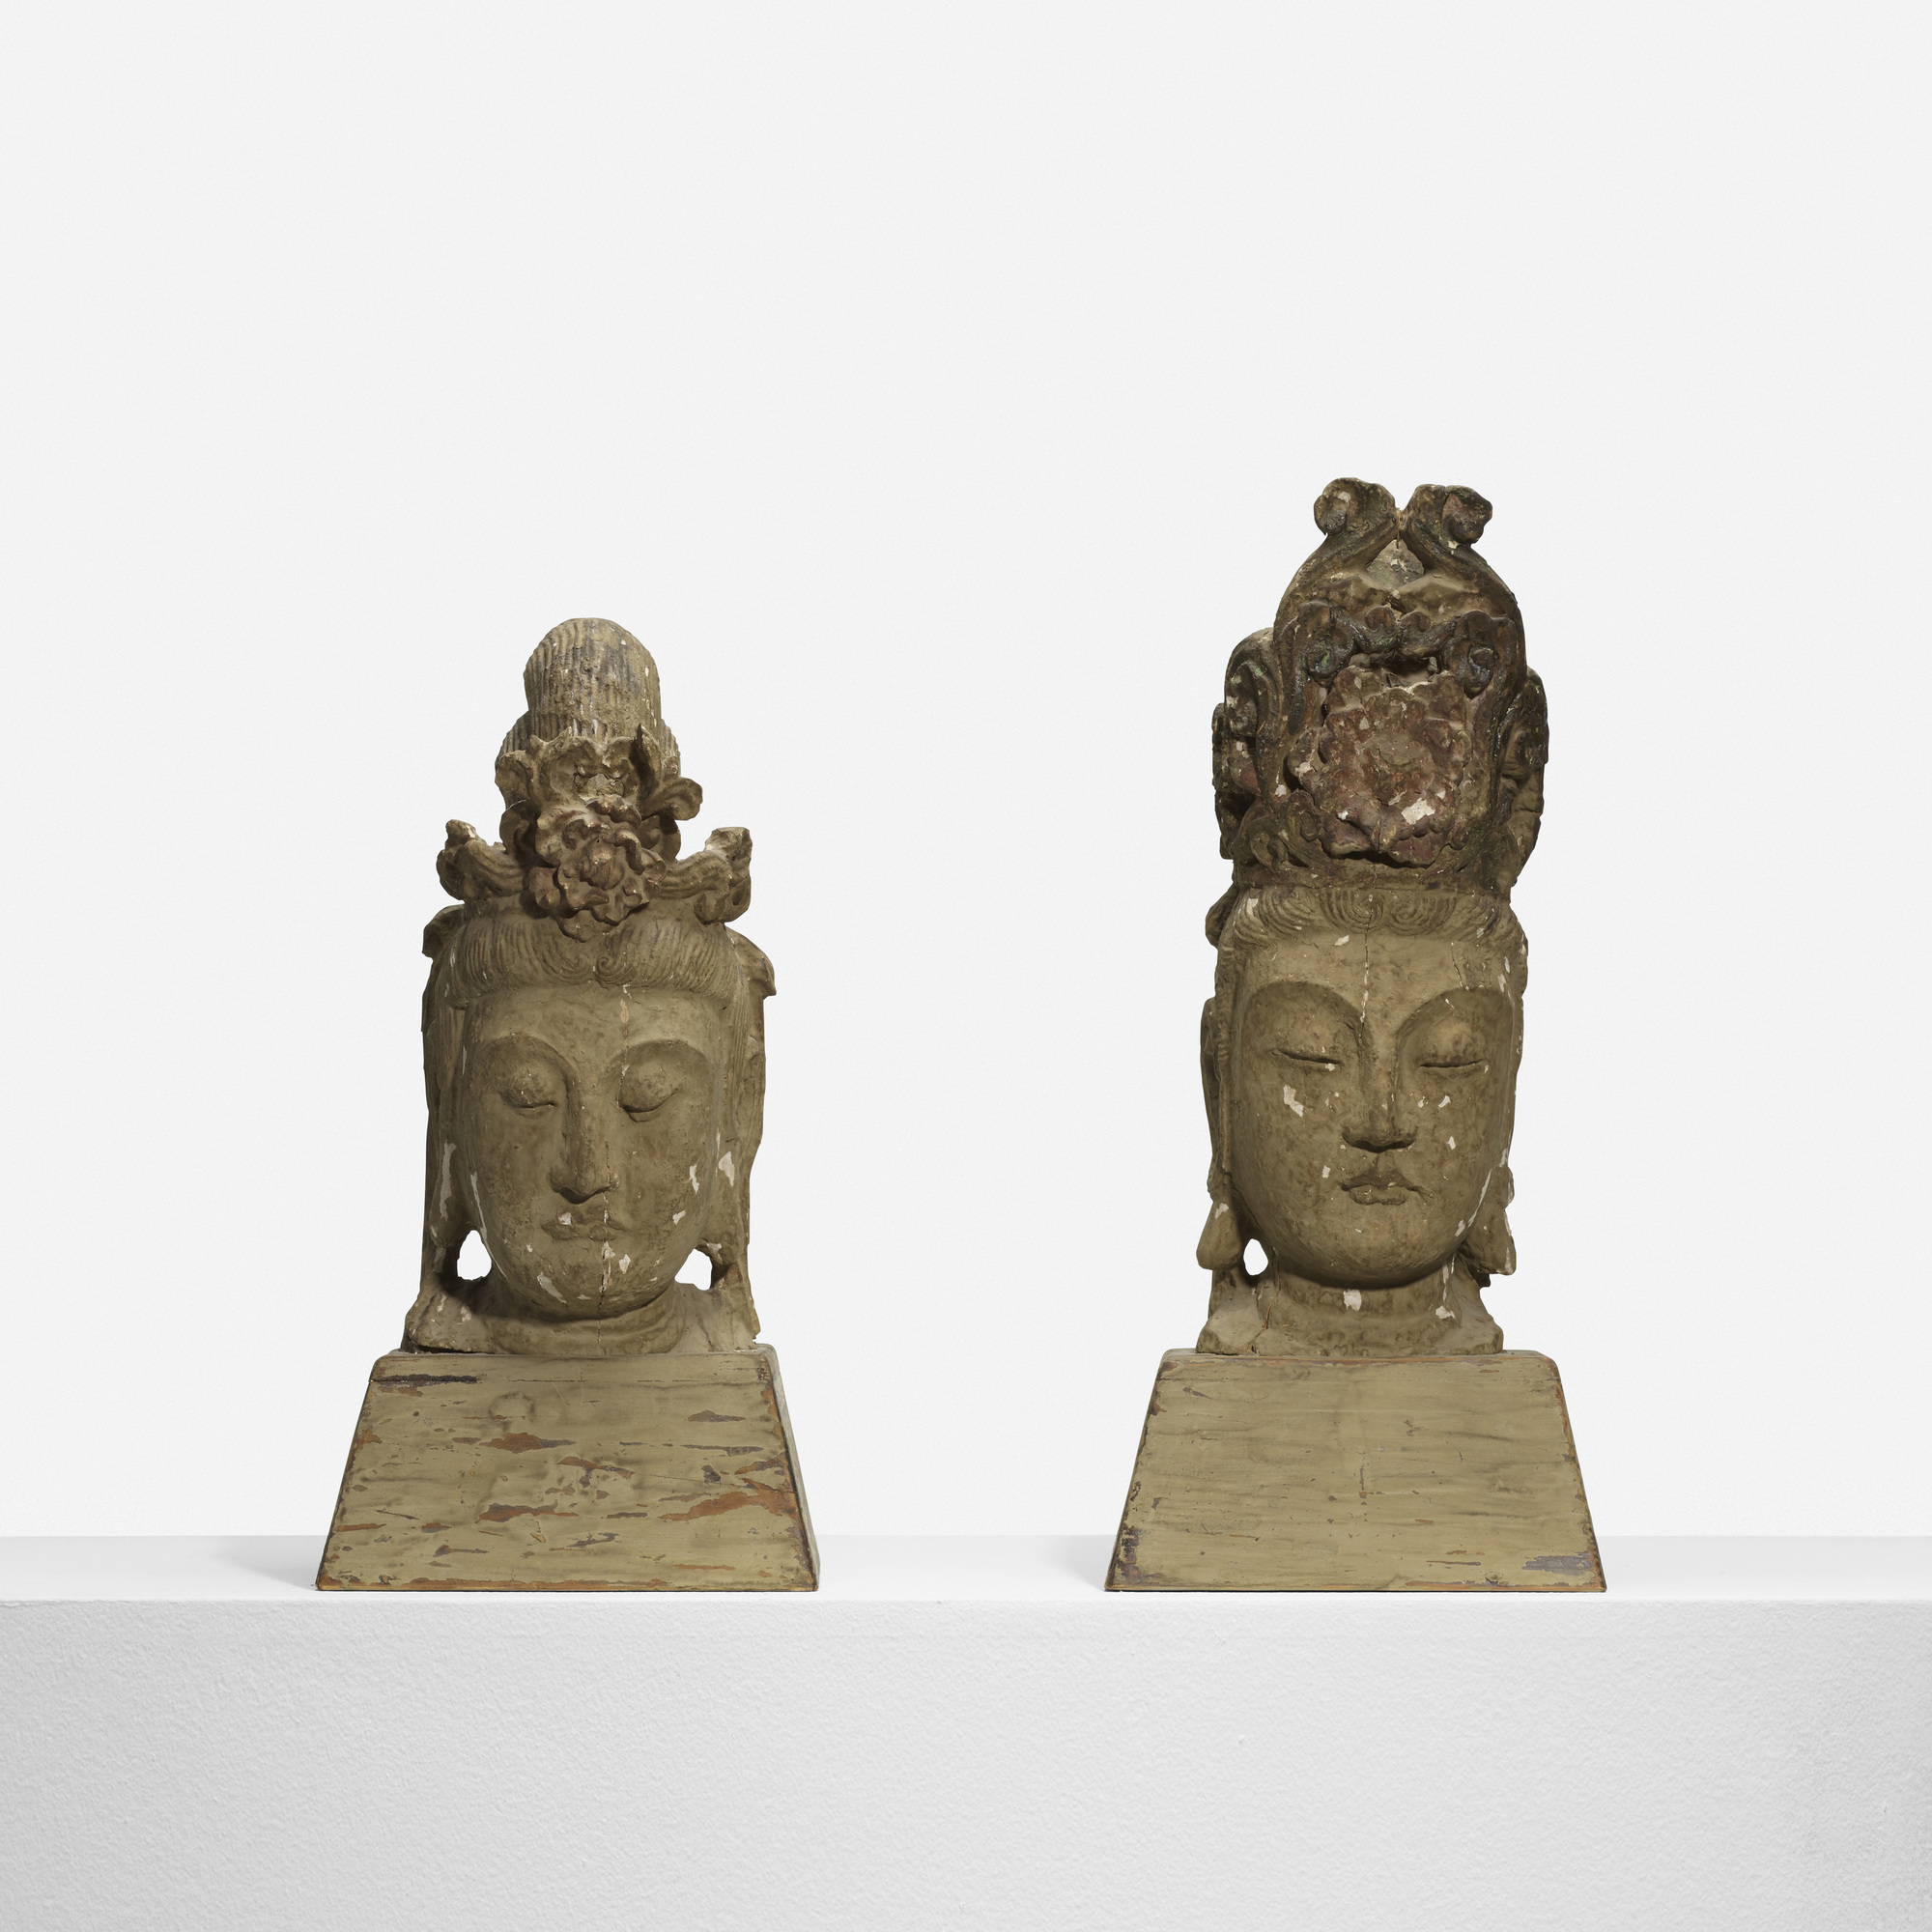 197: Selected by Samuel Marx / pair of Buddhas from the Morton D. May House (2 of 3)